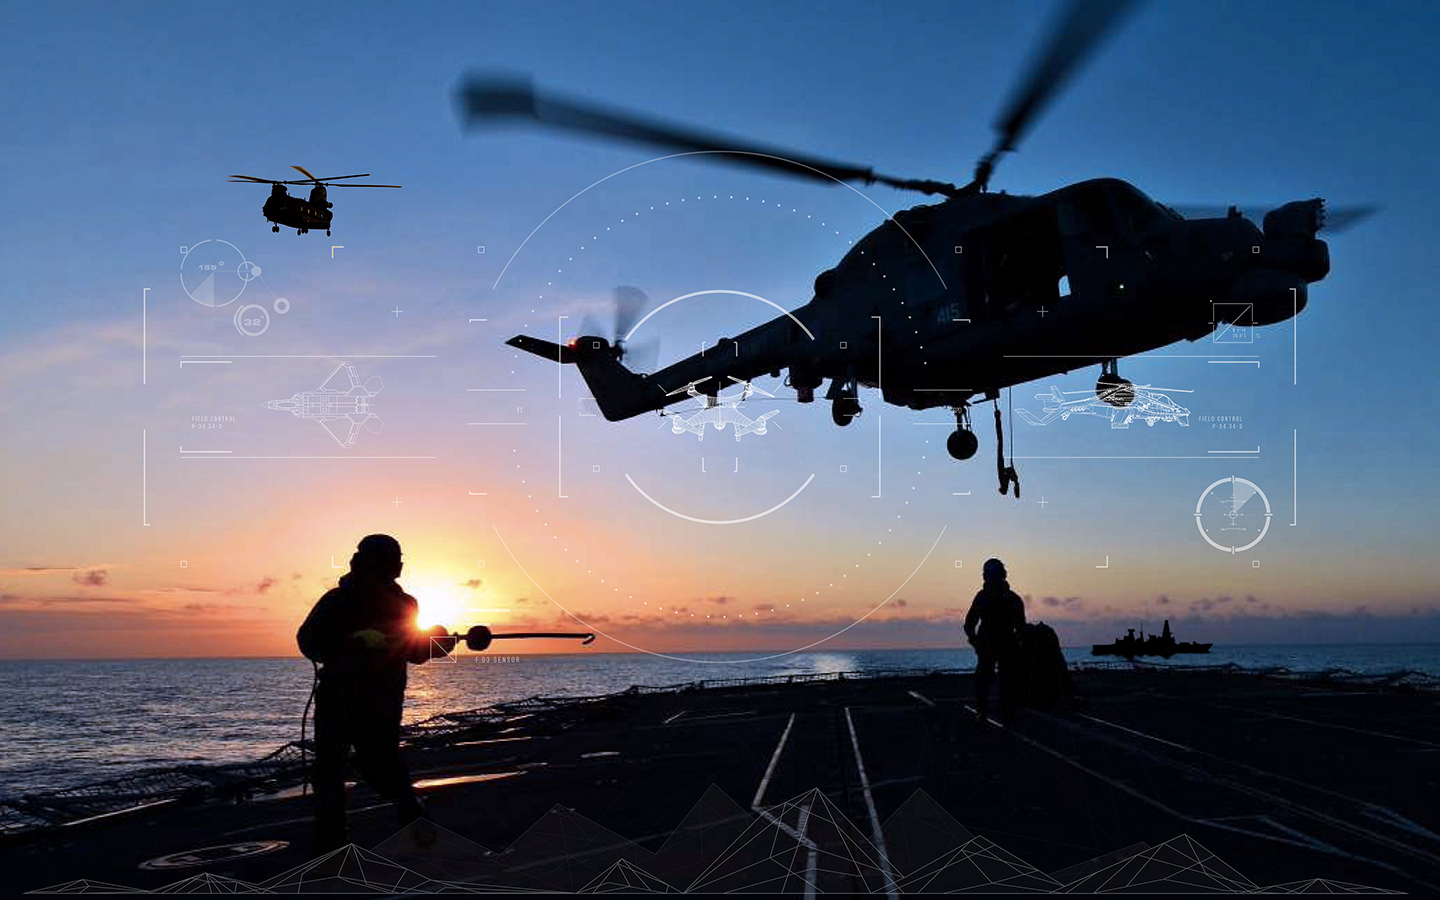 Sunset with helicopters landing on an aircraft carrier